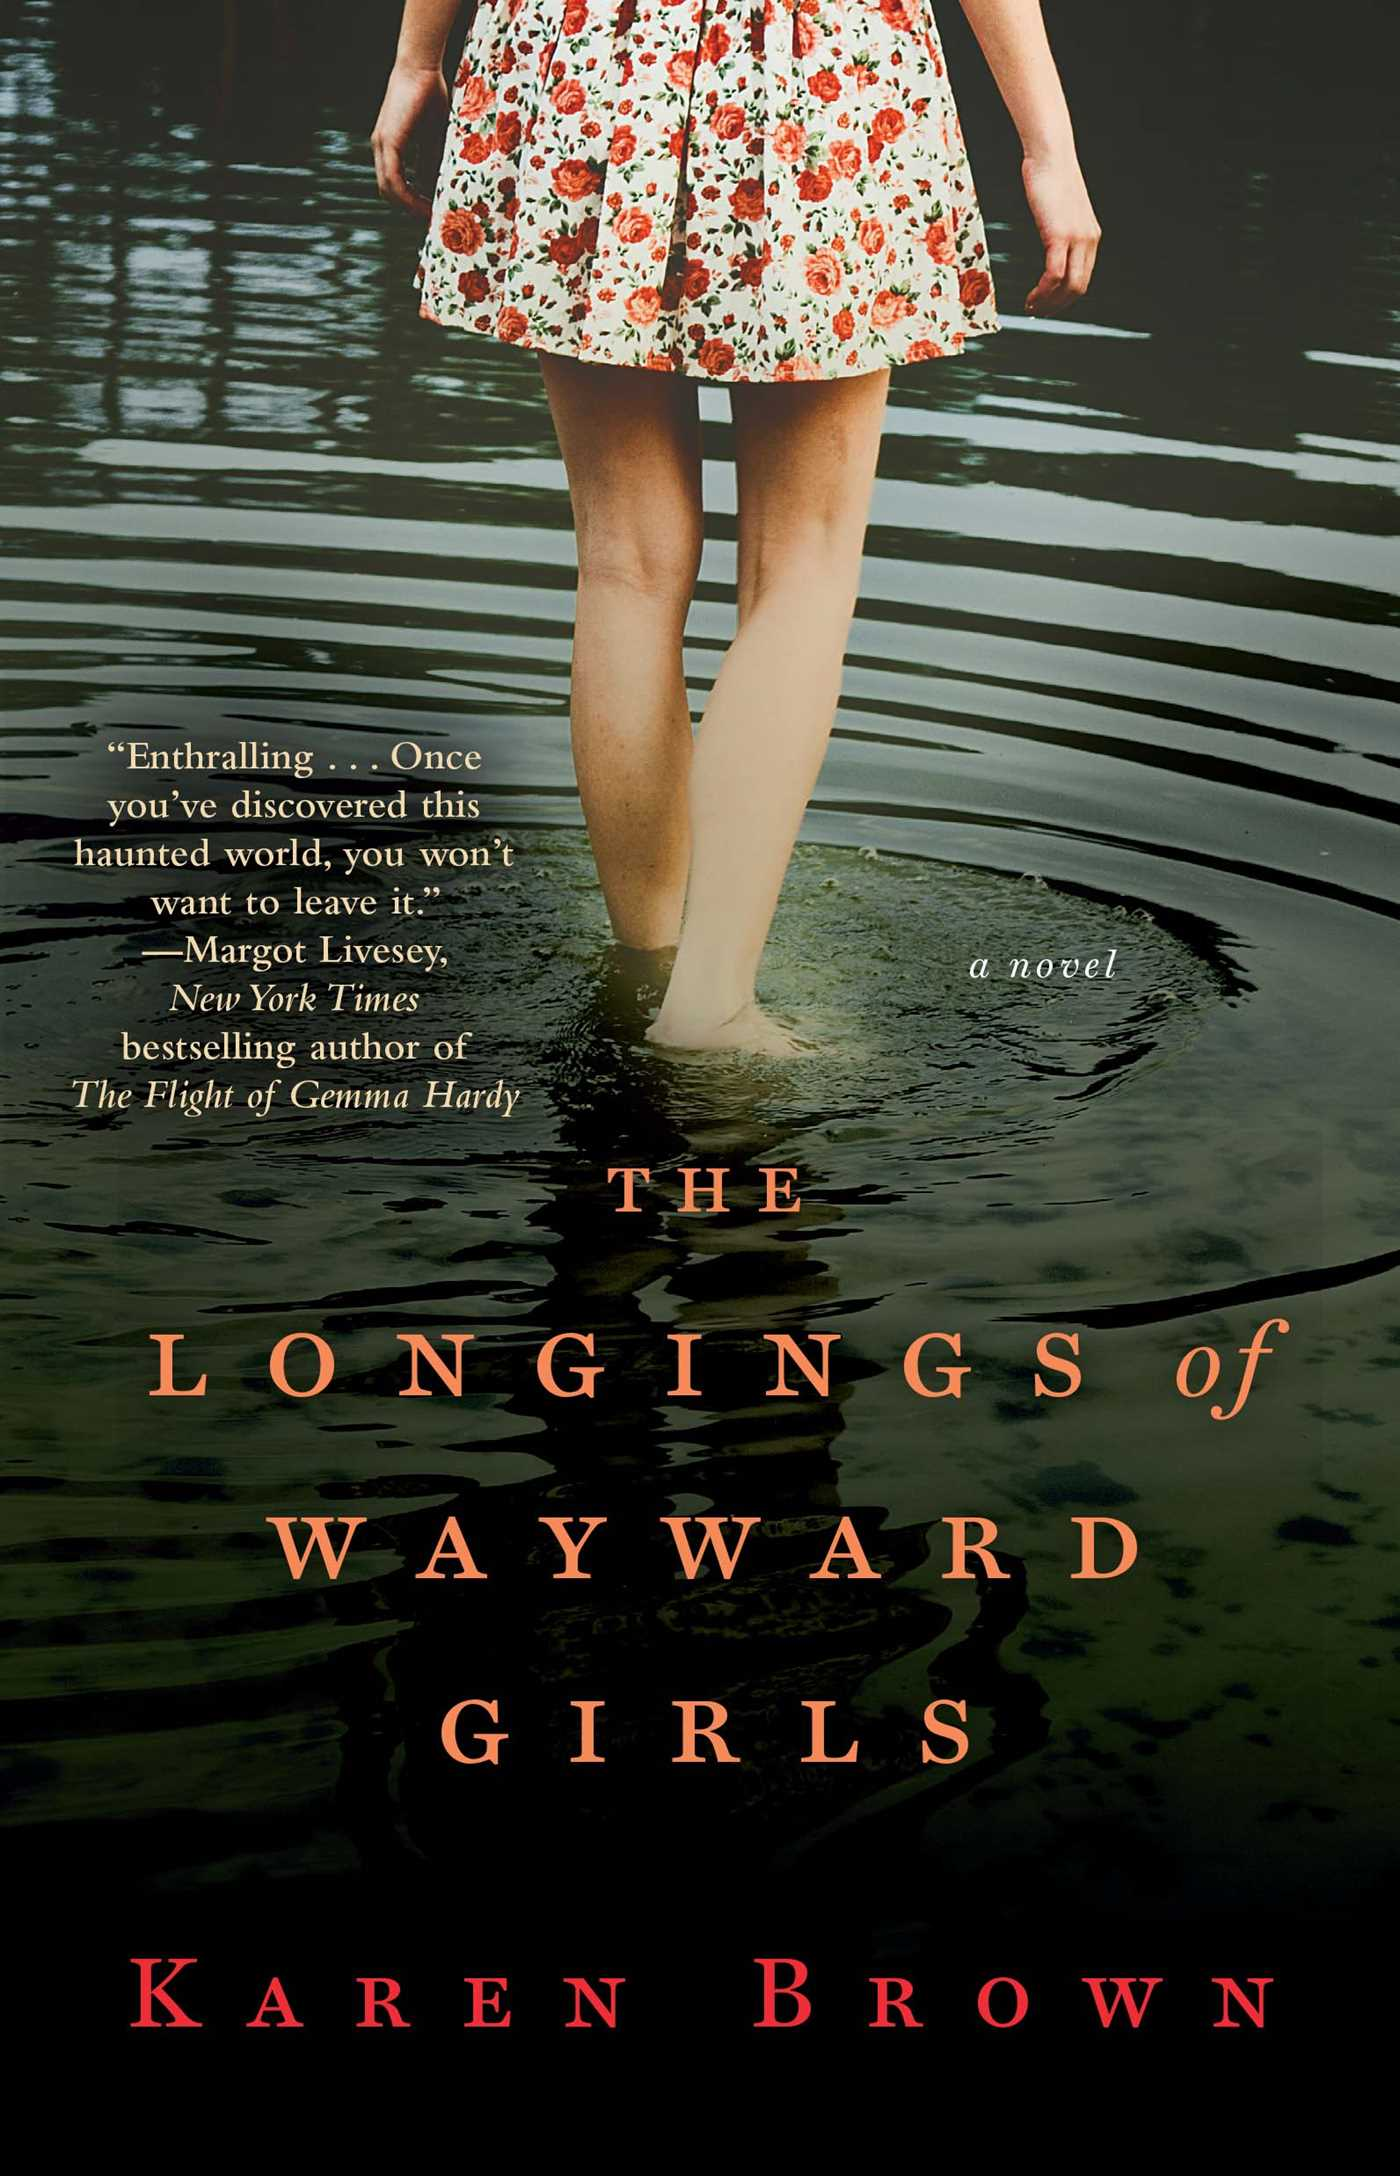 The longings of wayward girls 9781476724935 hr